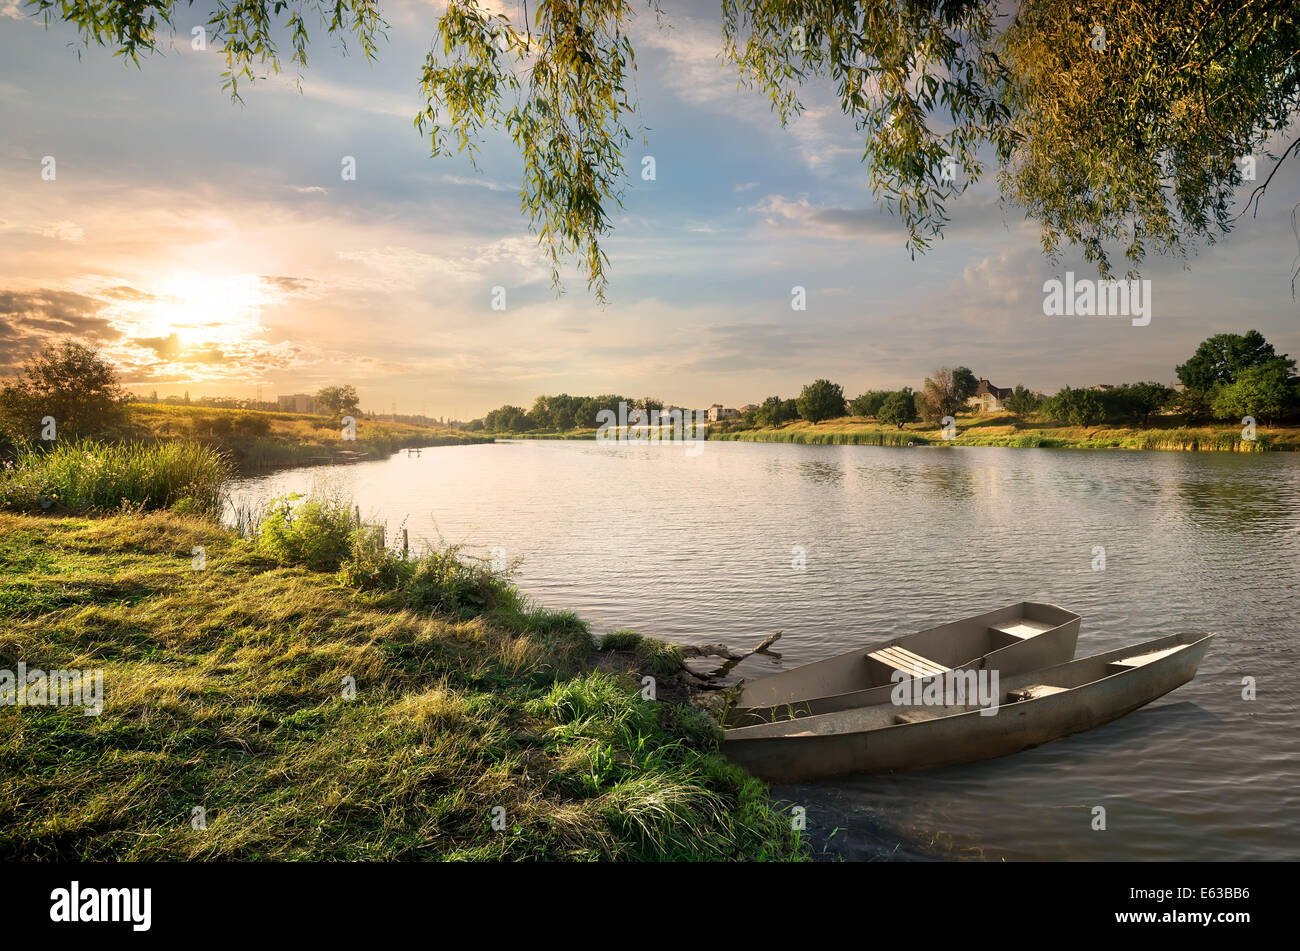 The river in the countryside in late summer - Stock Image